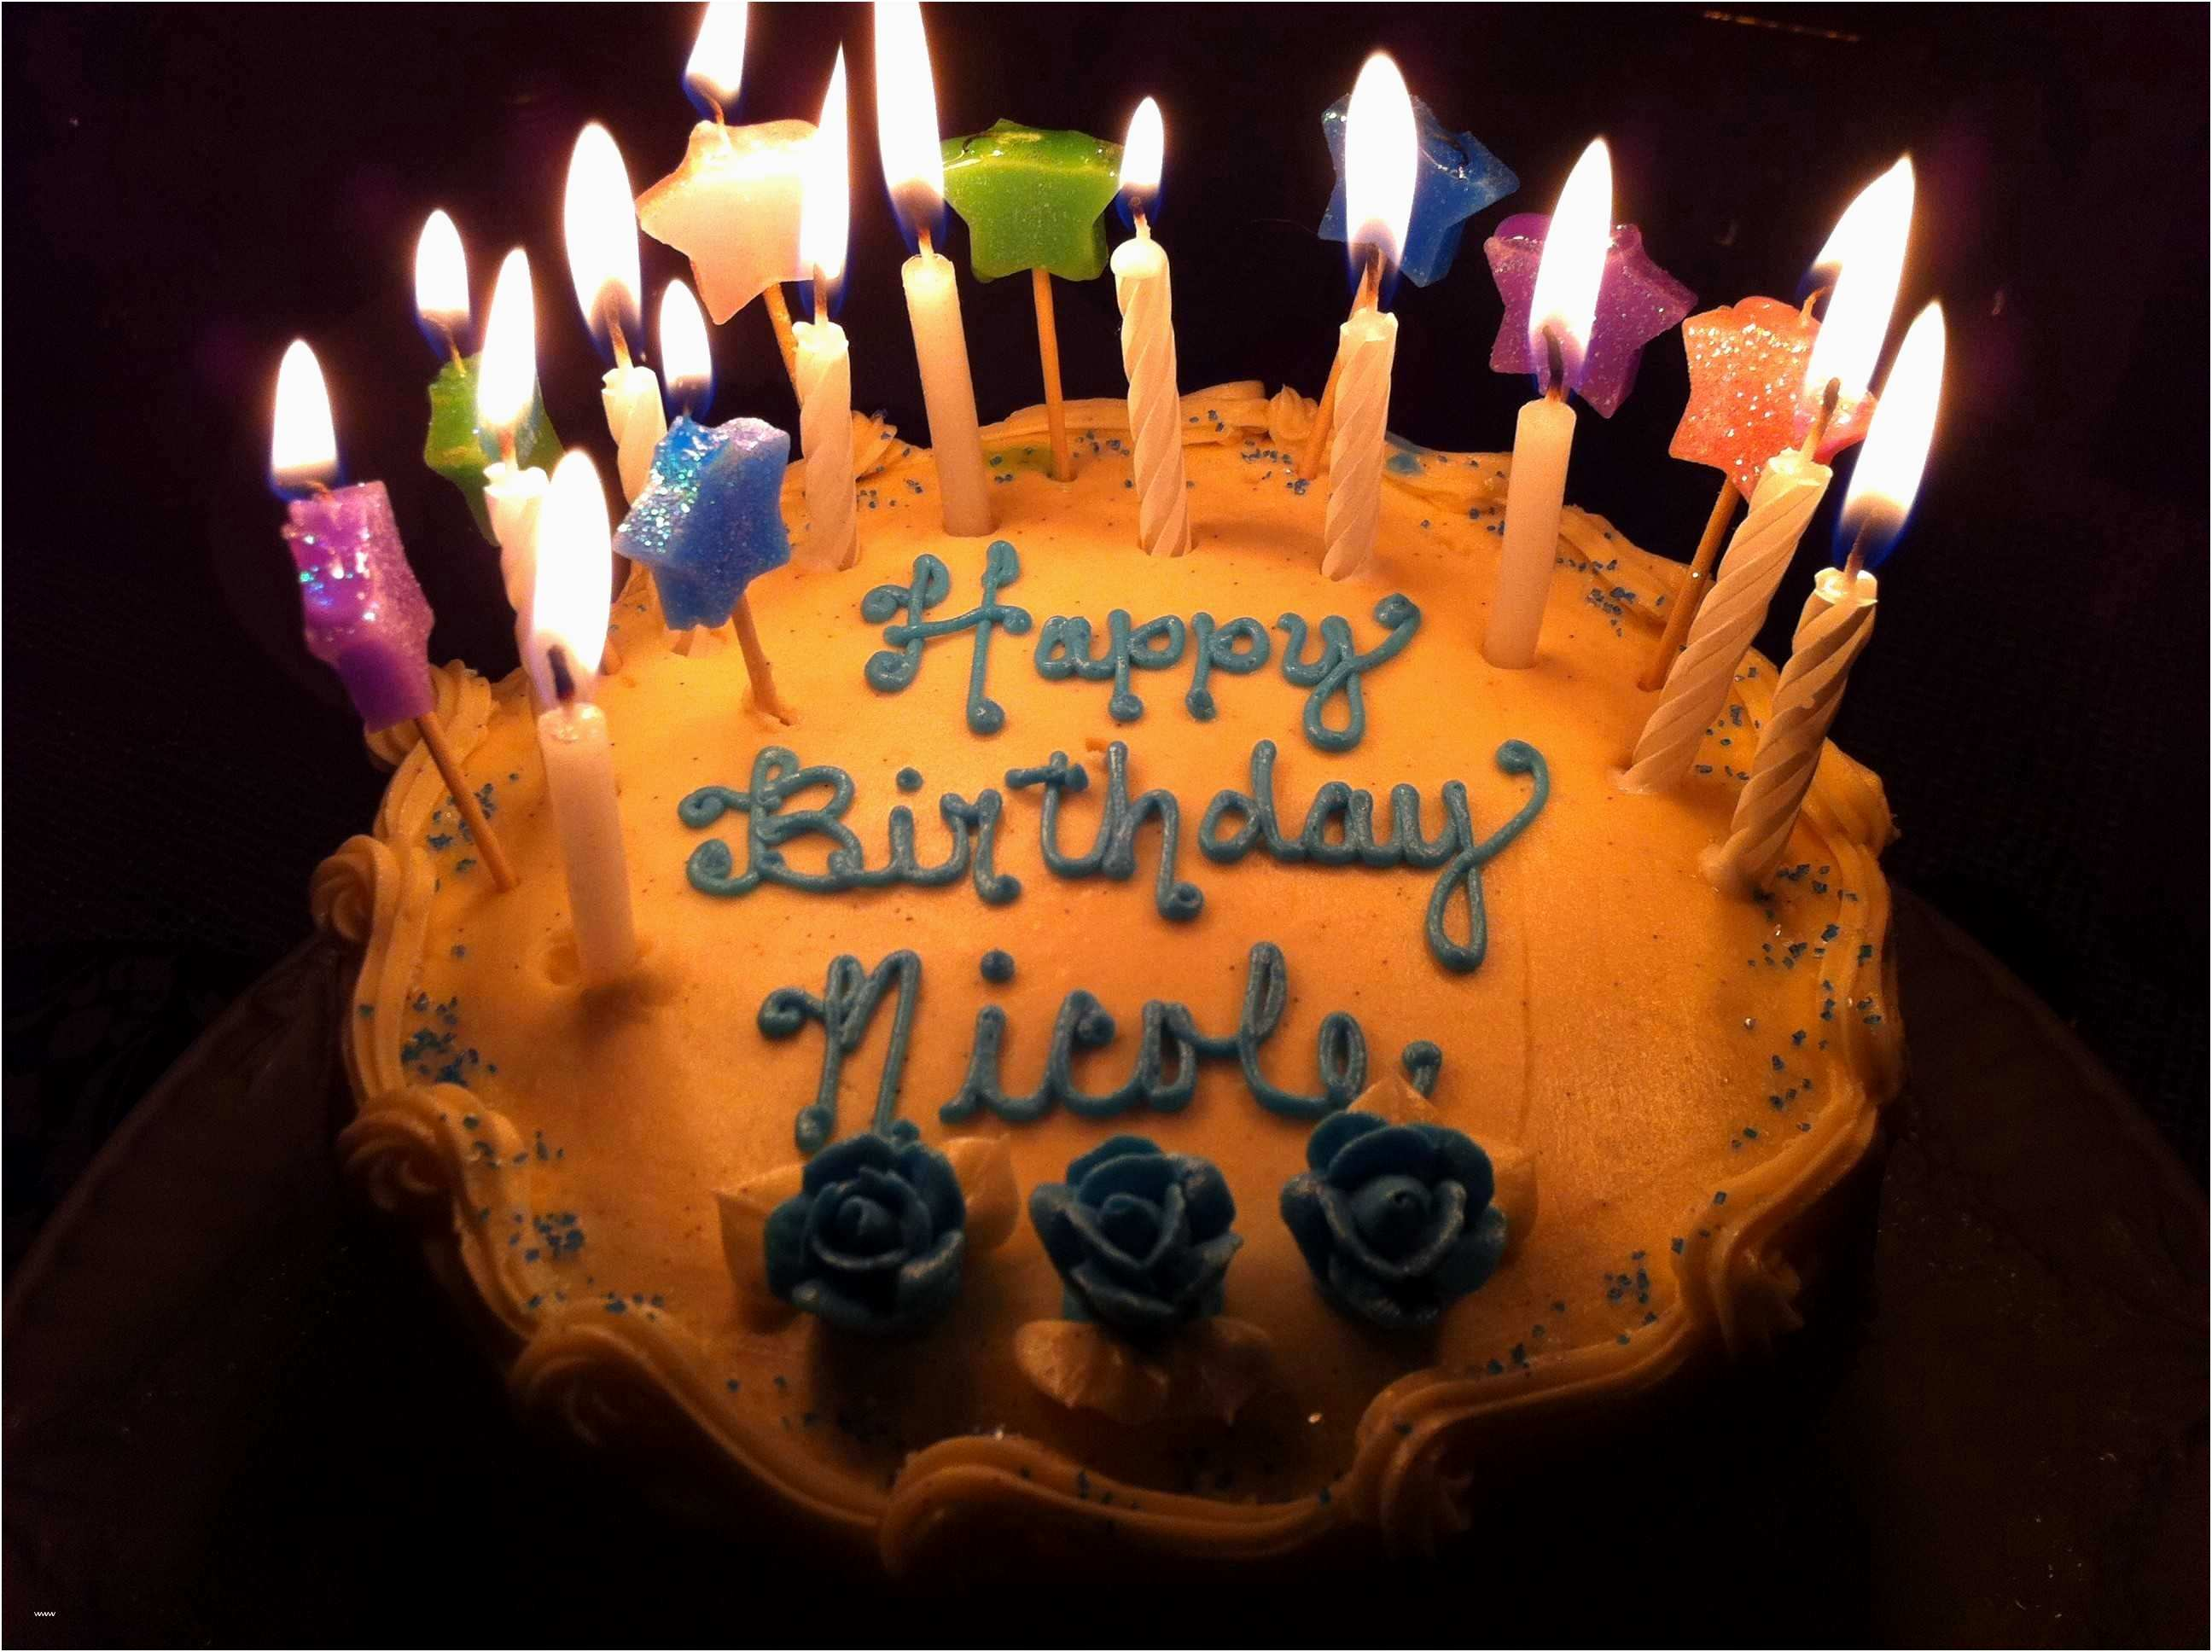 happy birthday cake with name wallpaper ; happy-birthday-cake-images-edit-name-inspirational-2016-happy-birthday-hd-hdq-wallpapers-hd-quality-backgrounds-22xsj-of-happy-birthday-cake-images-edit-name